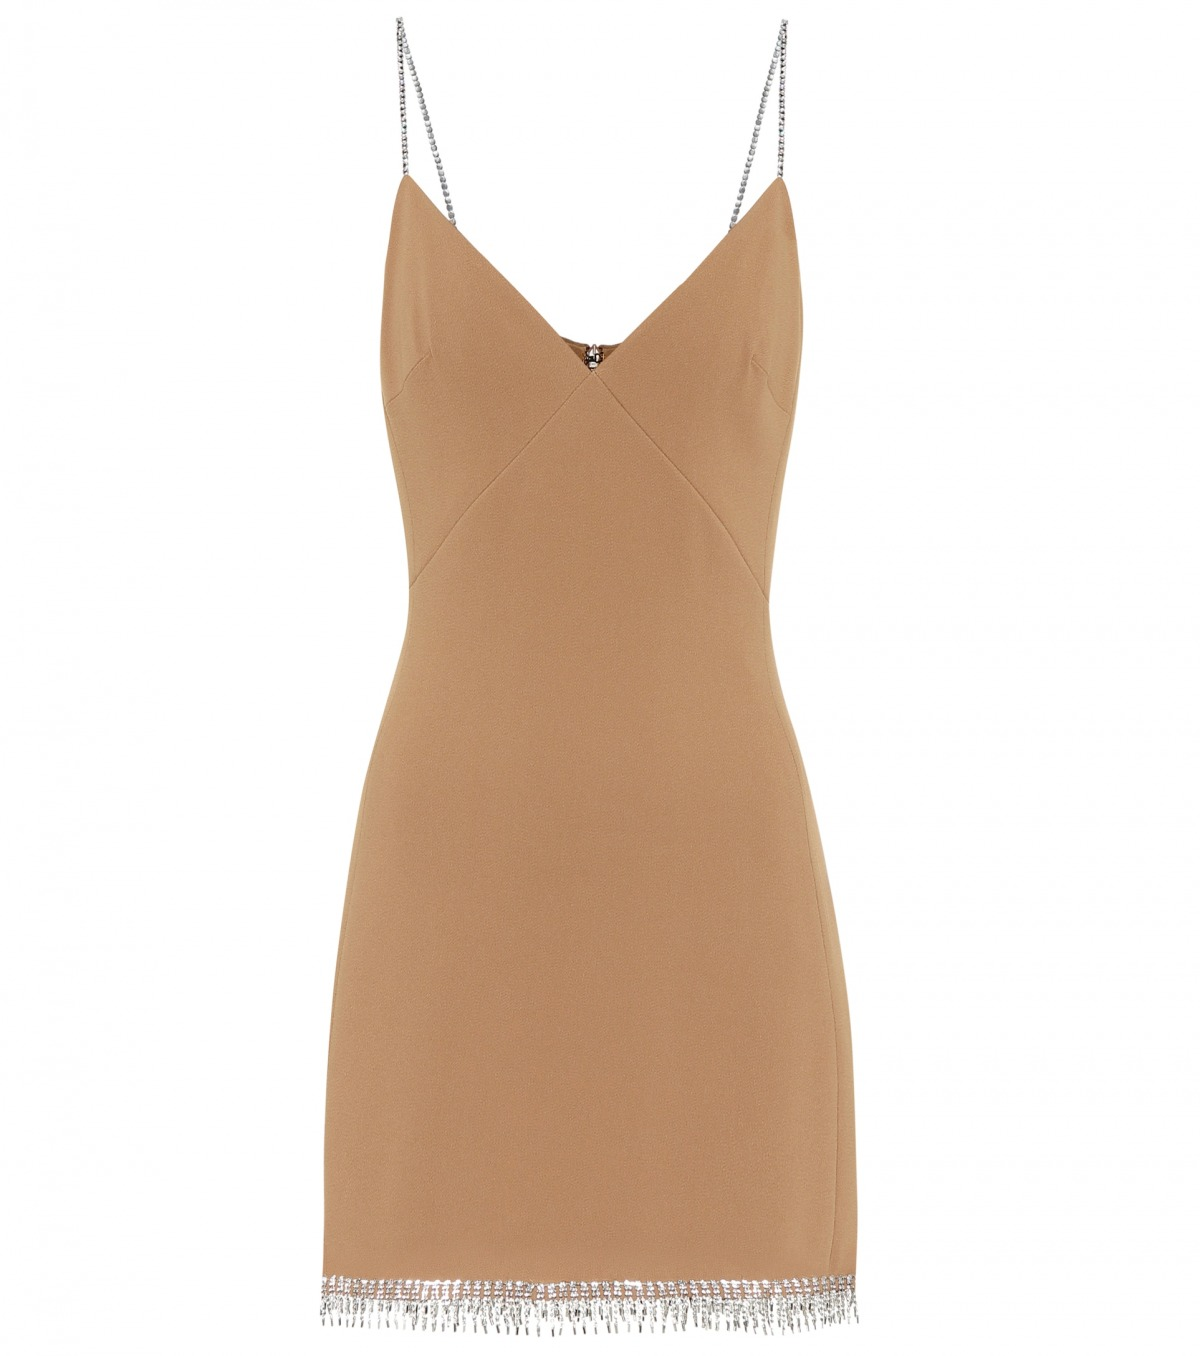 Embellished Stretch-Crepe Dress by David Koma, available on mytheresa.com for £1165 Kendall Jenner Dress Exact Product